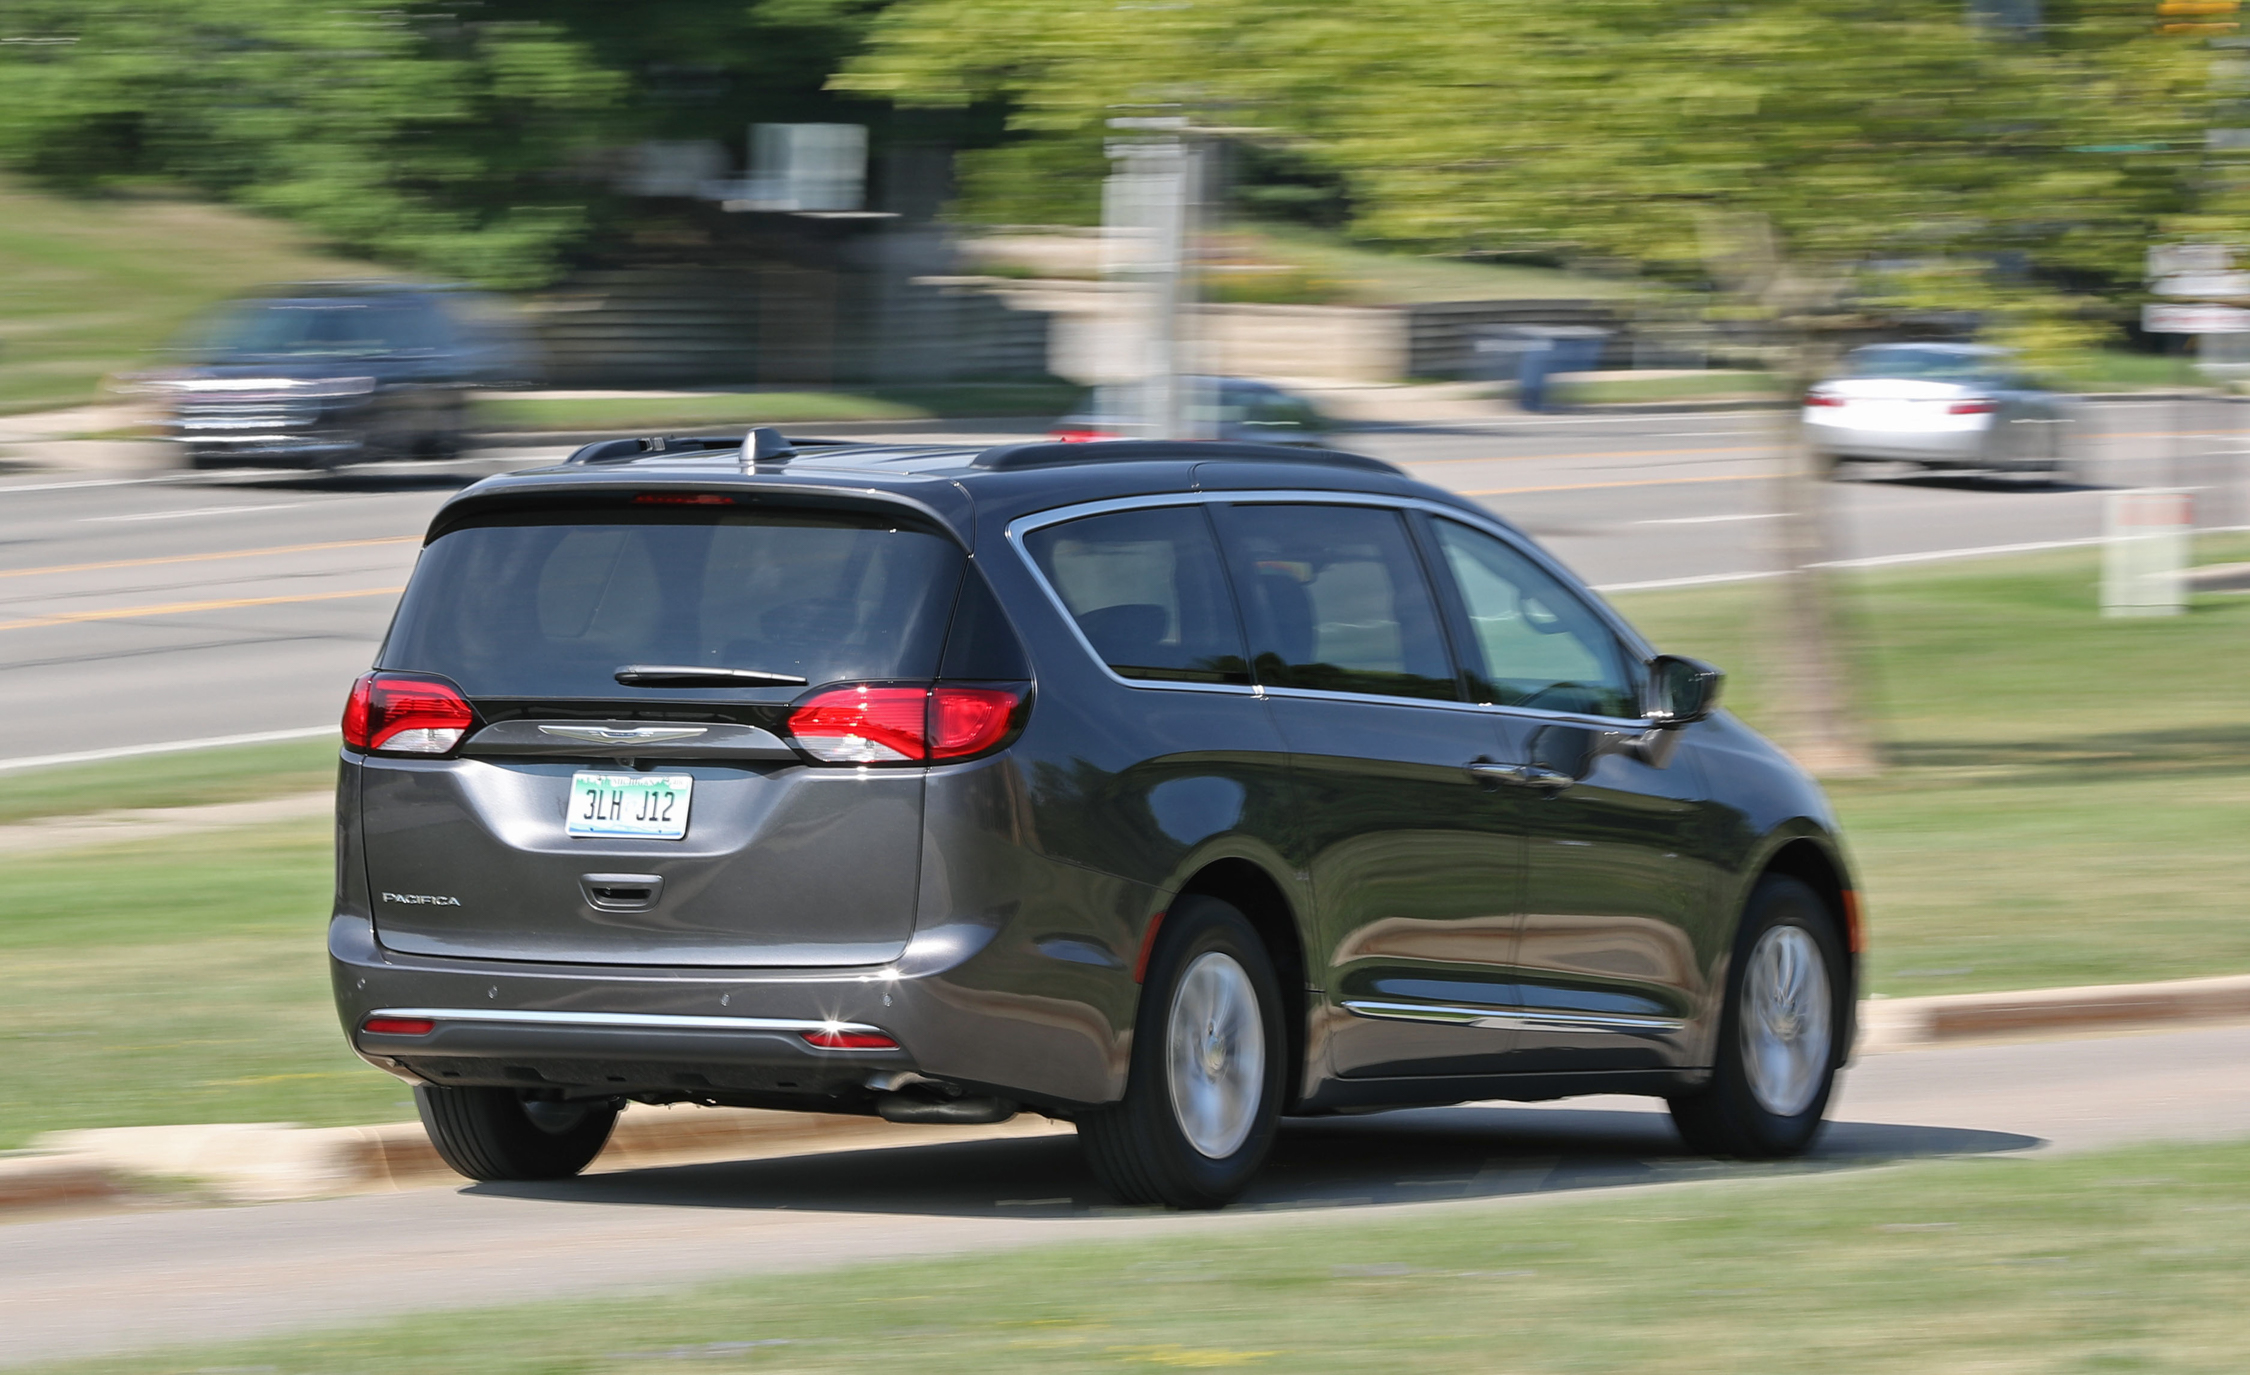 2017 Chrysler Pacifica Touring L Test Drive Rear View (View 6 of 25)